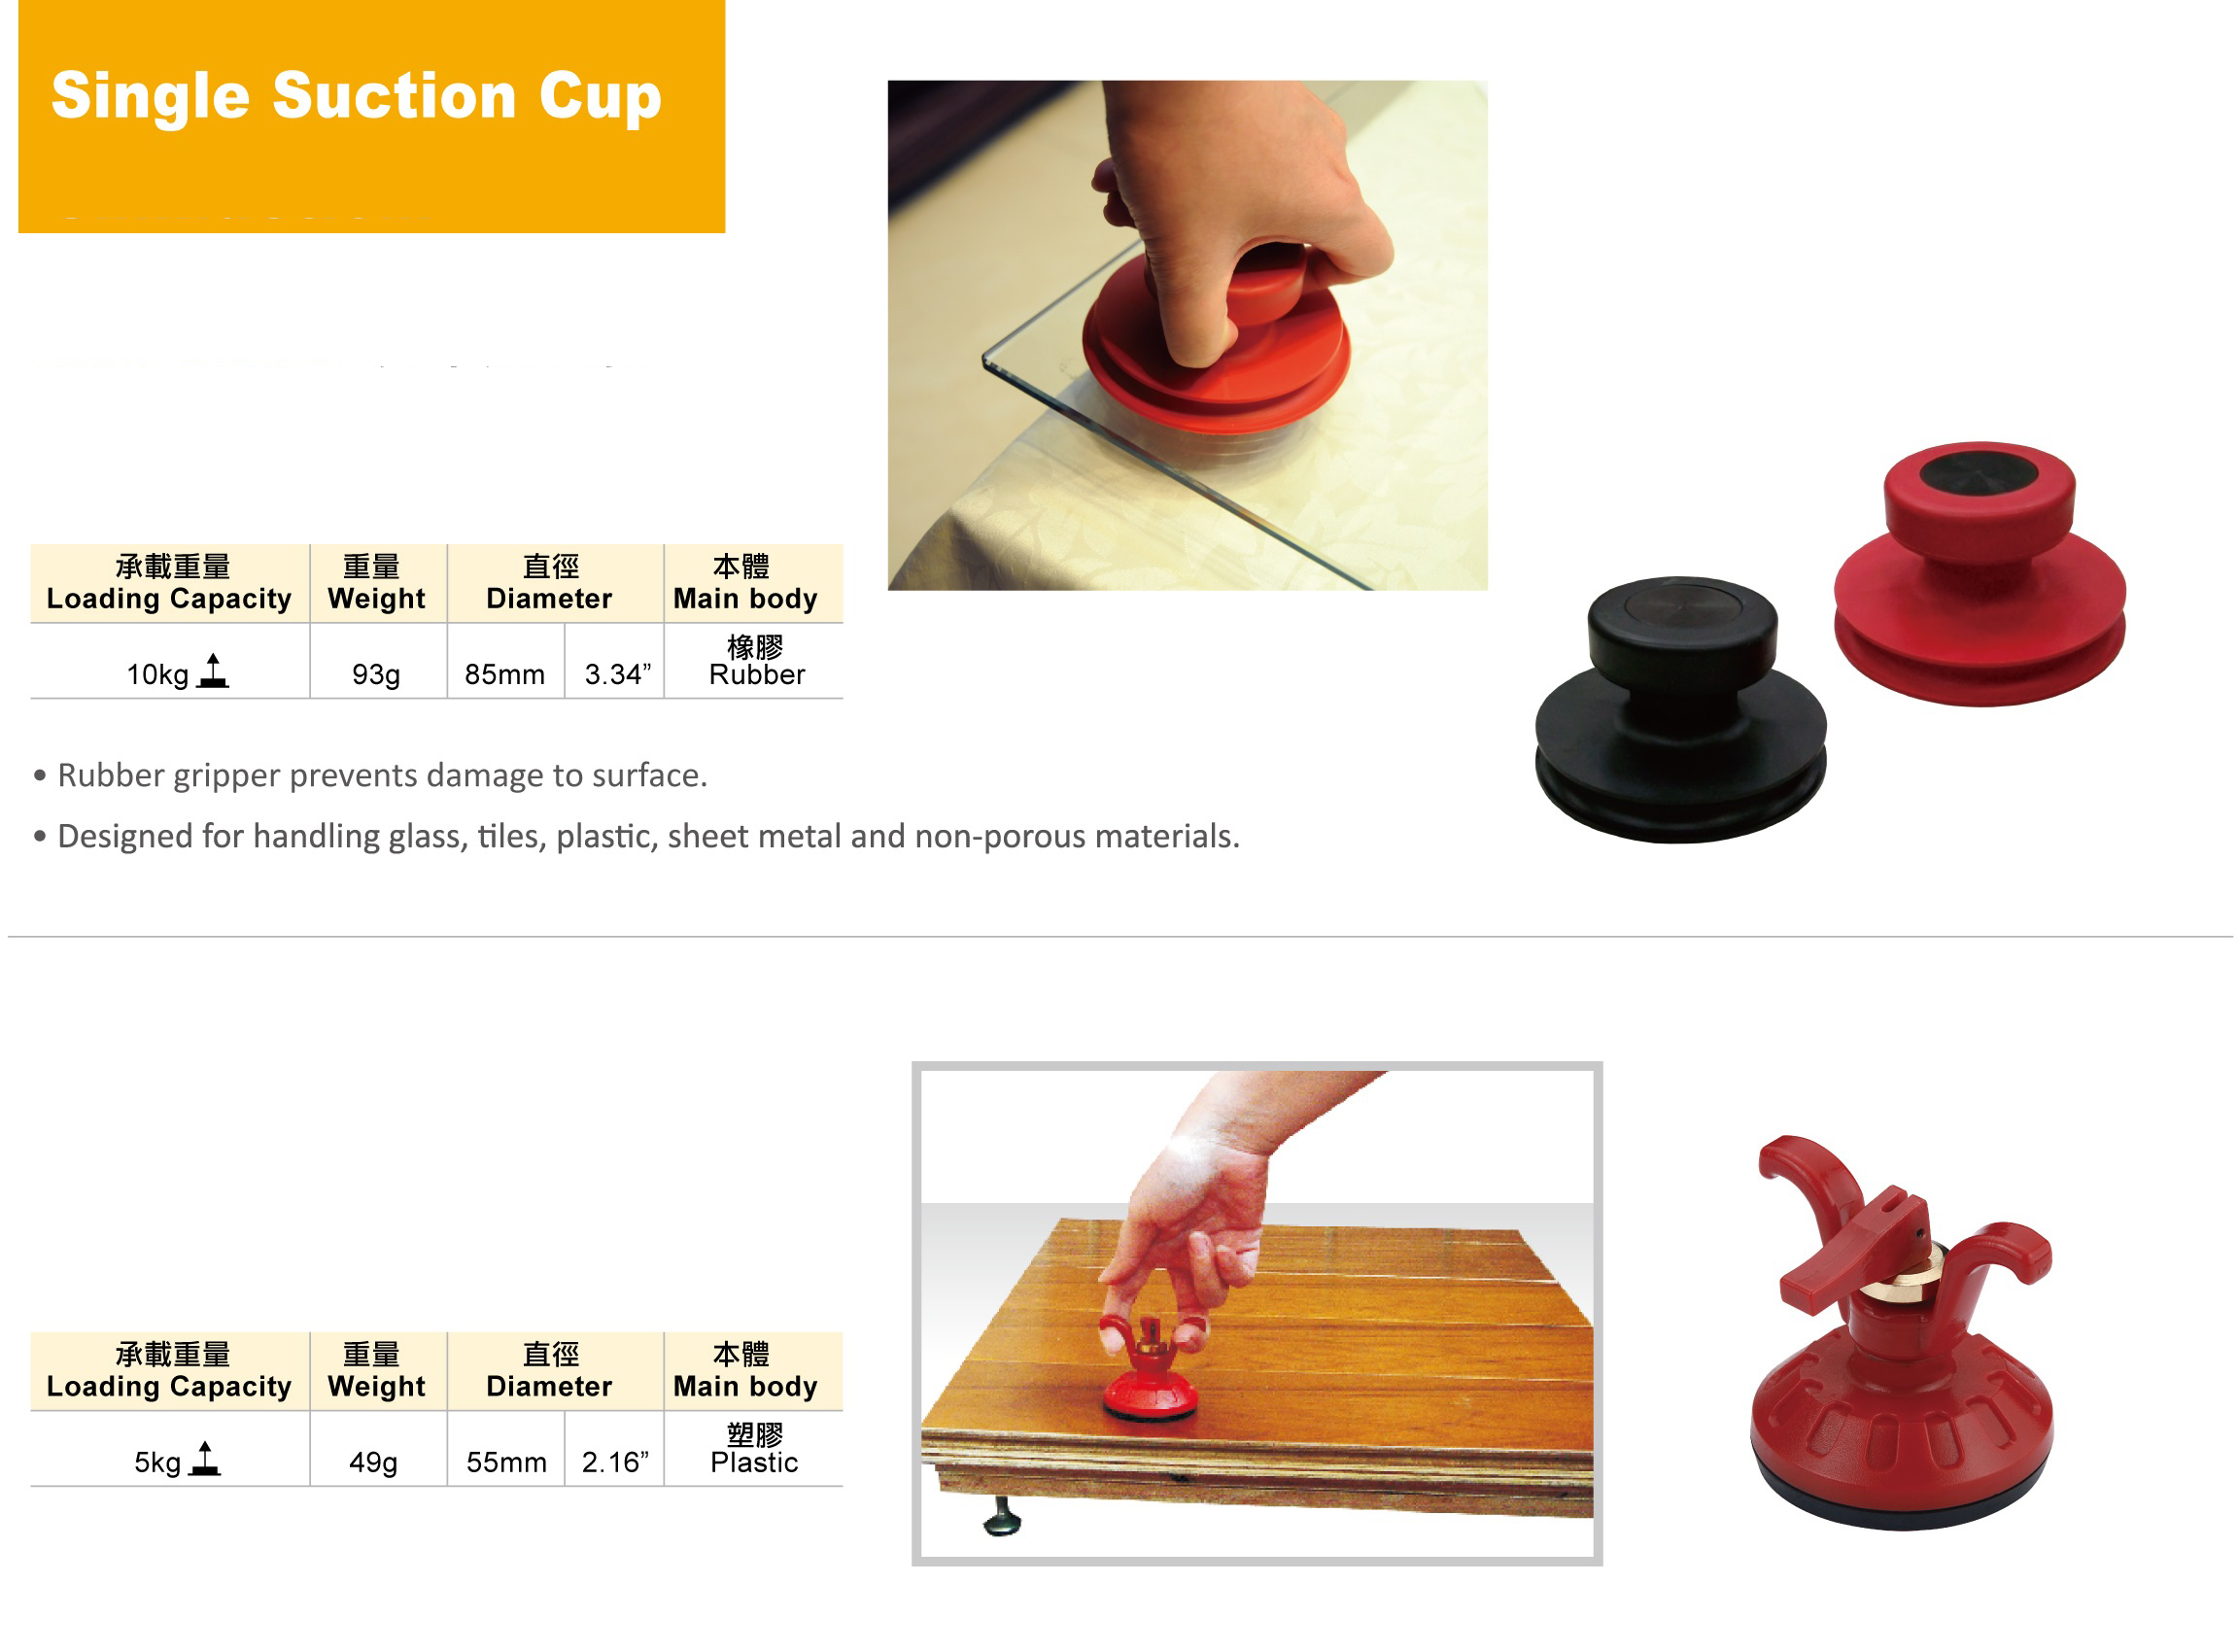 Economic Single Rubber Cup Pump Vacuum Glass Suction Lifter